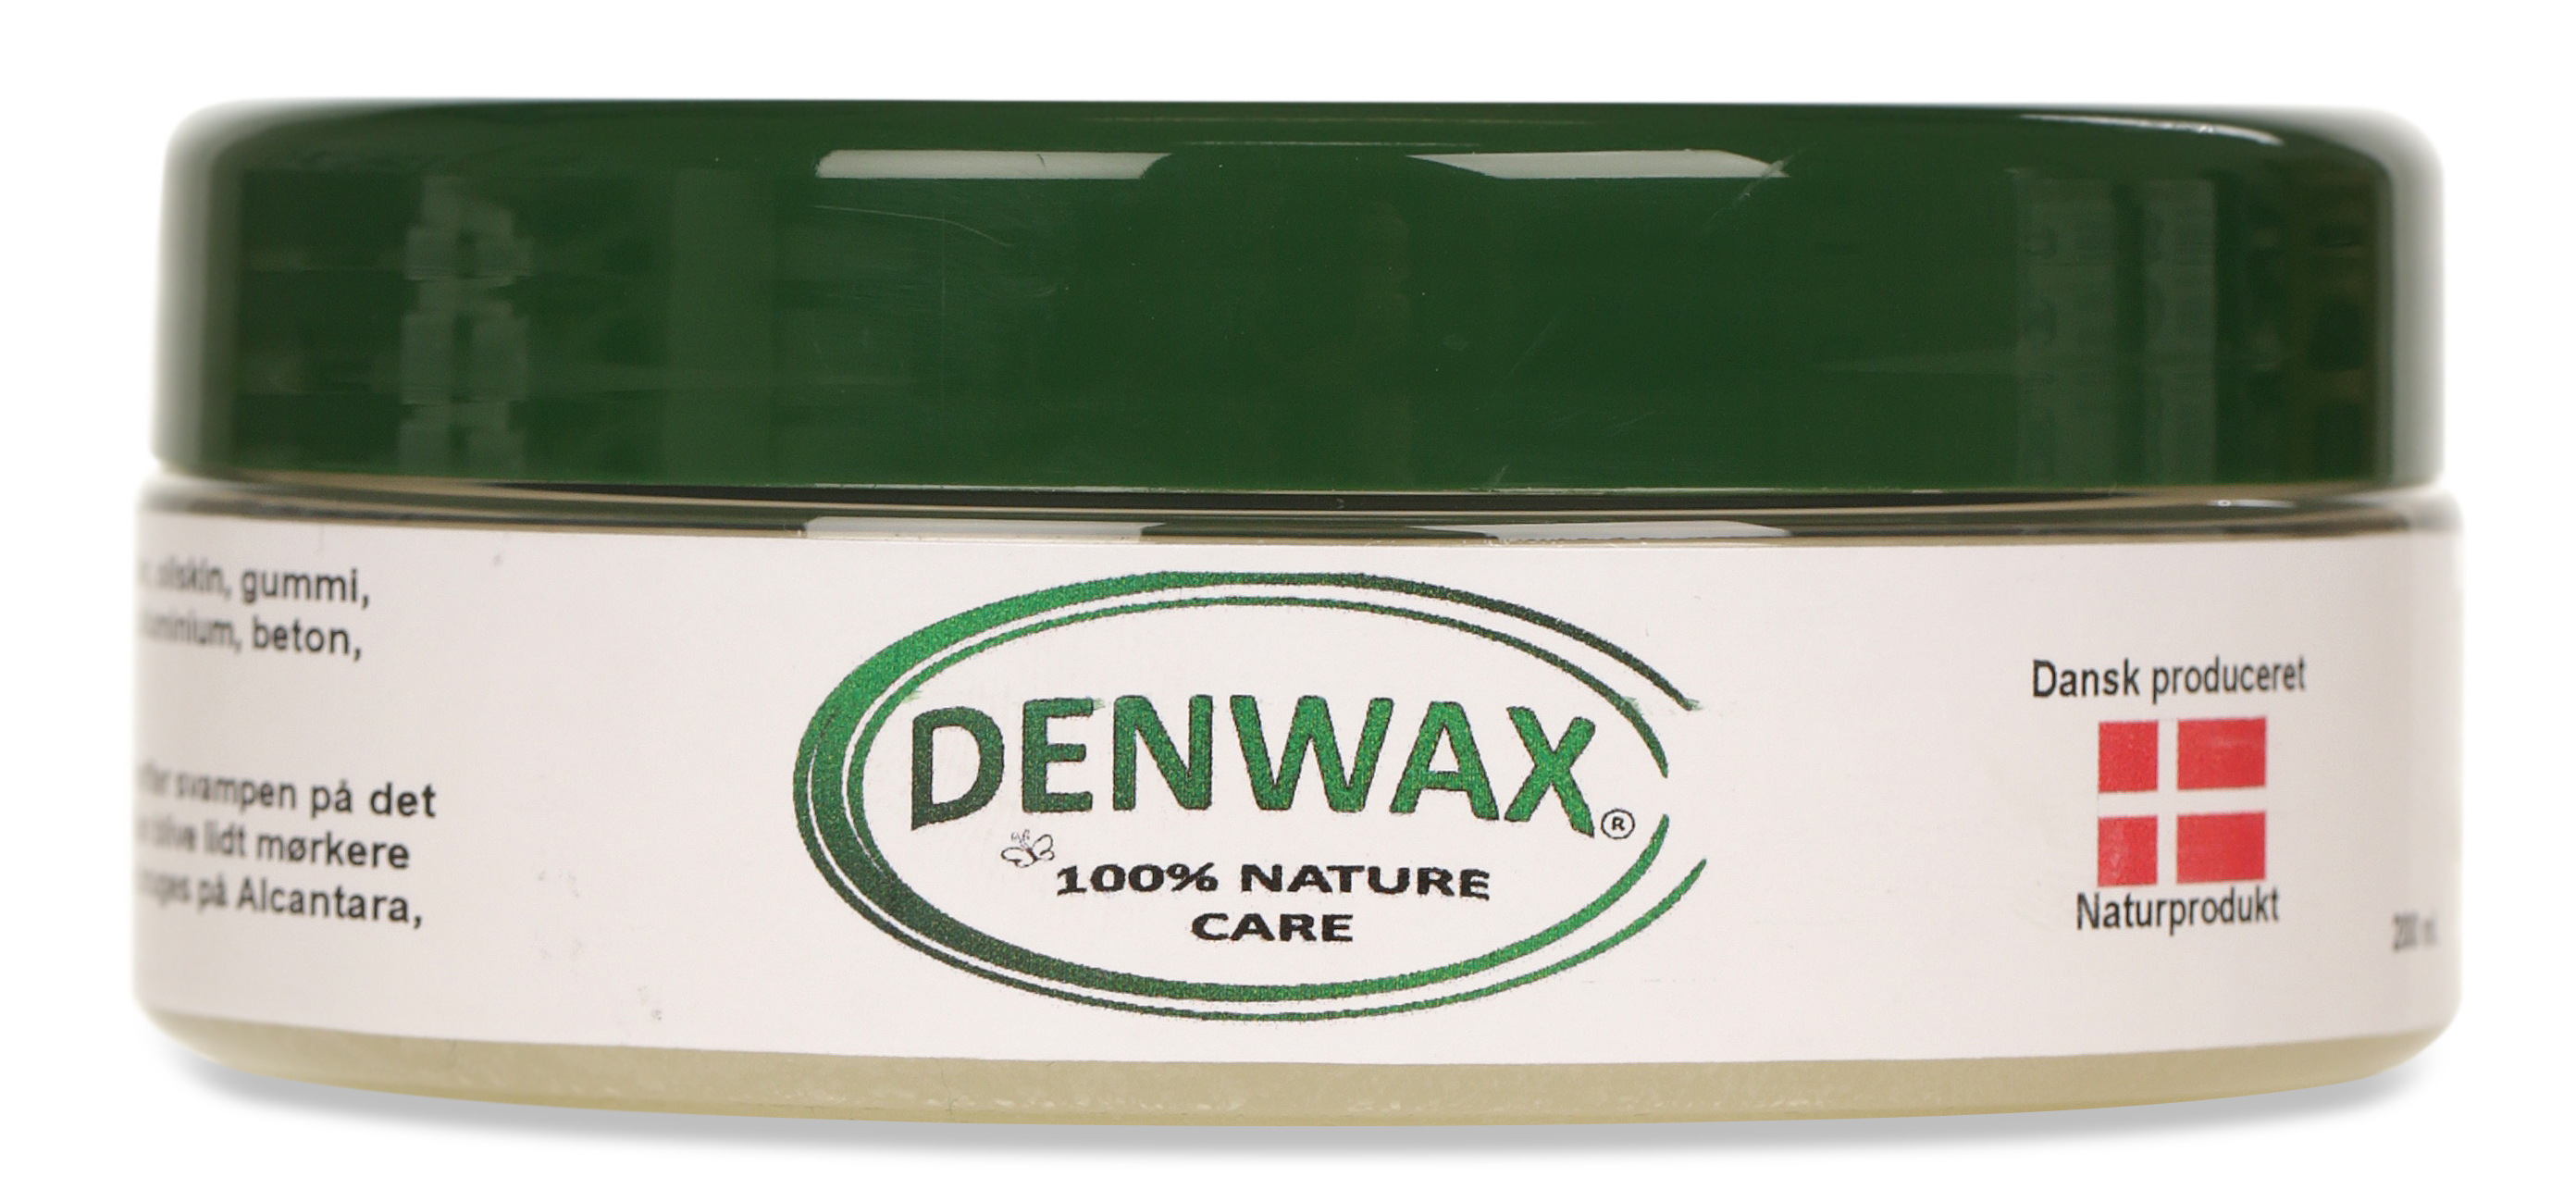 Denwax, Care, 200 ml.